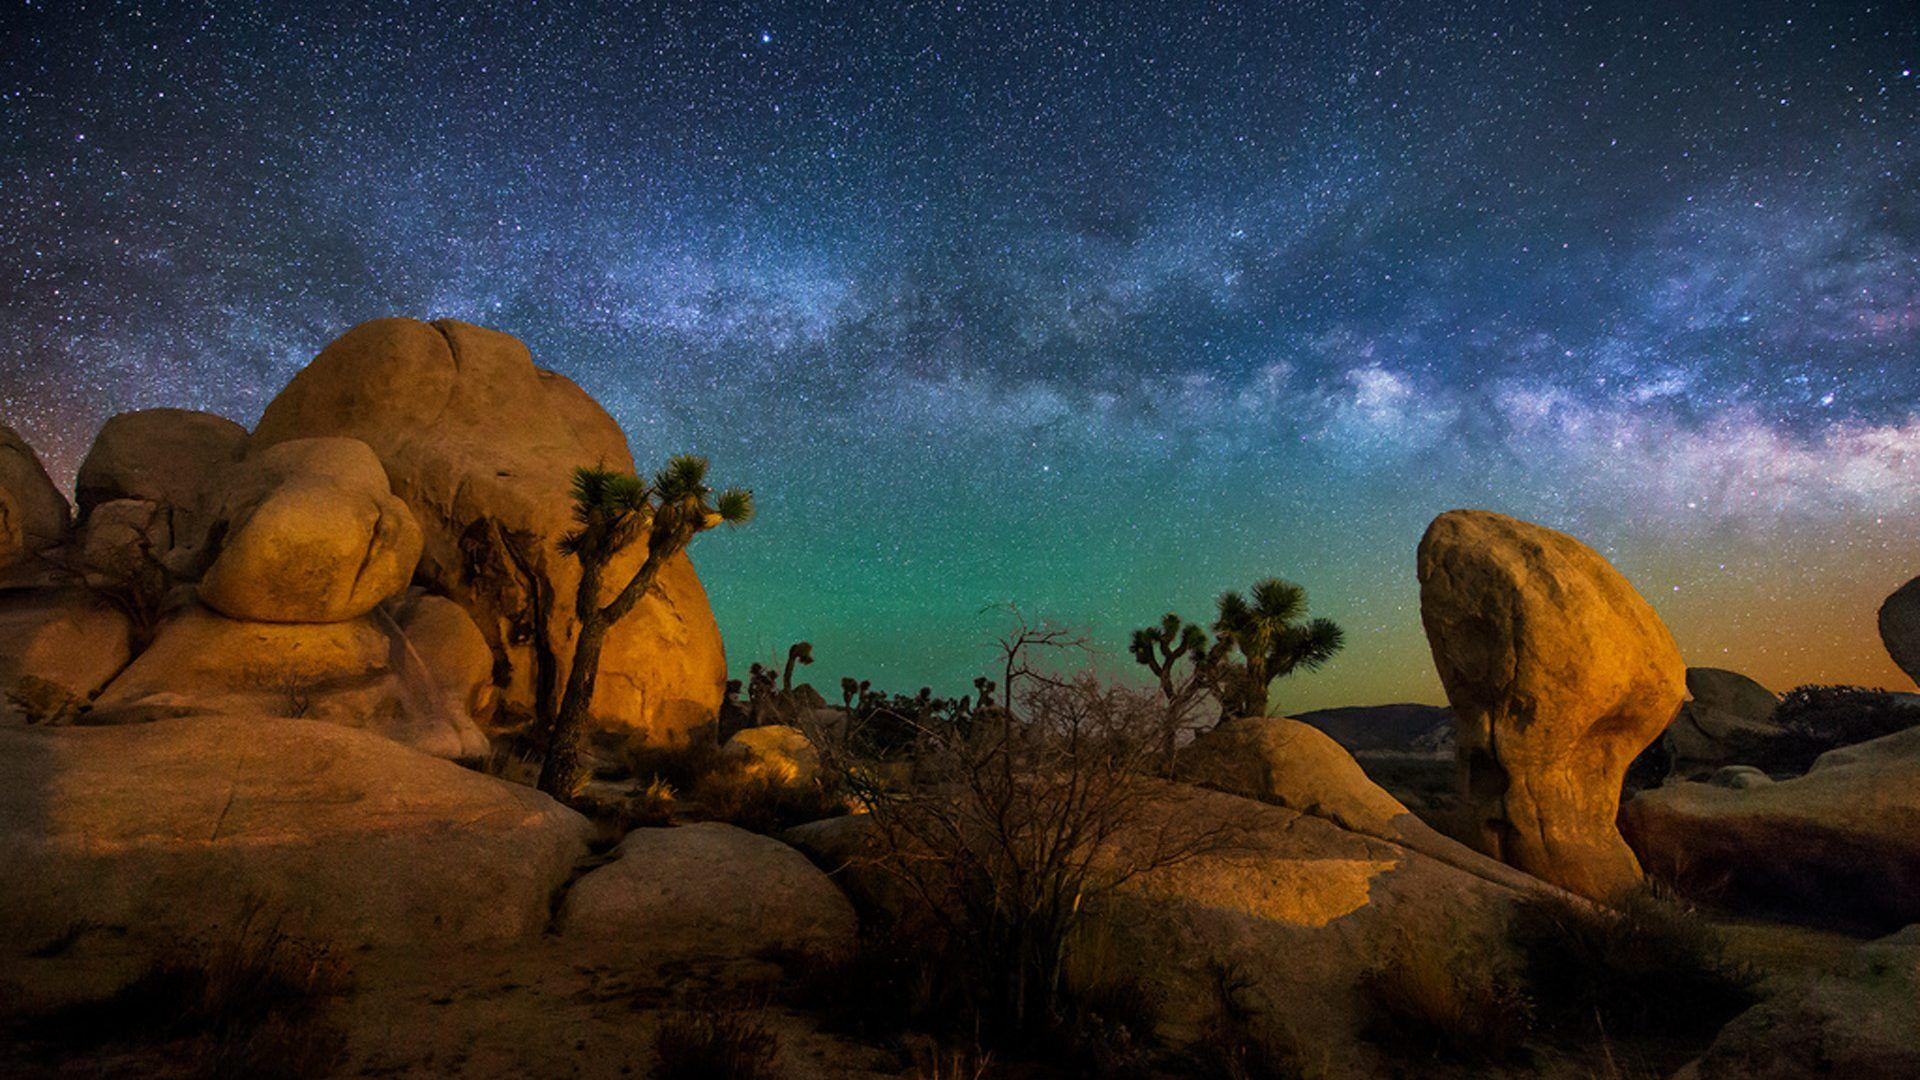 Starry Sky Joshua Tree National Park Usa Hd Wallpapers For Desktop